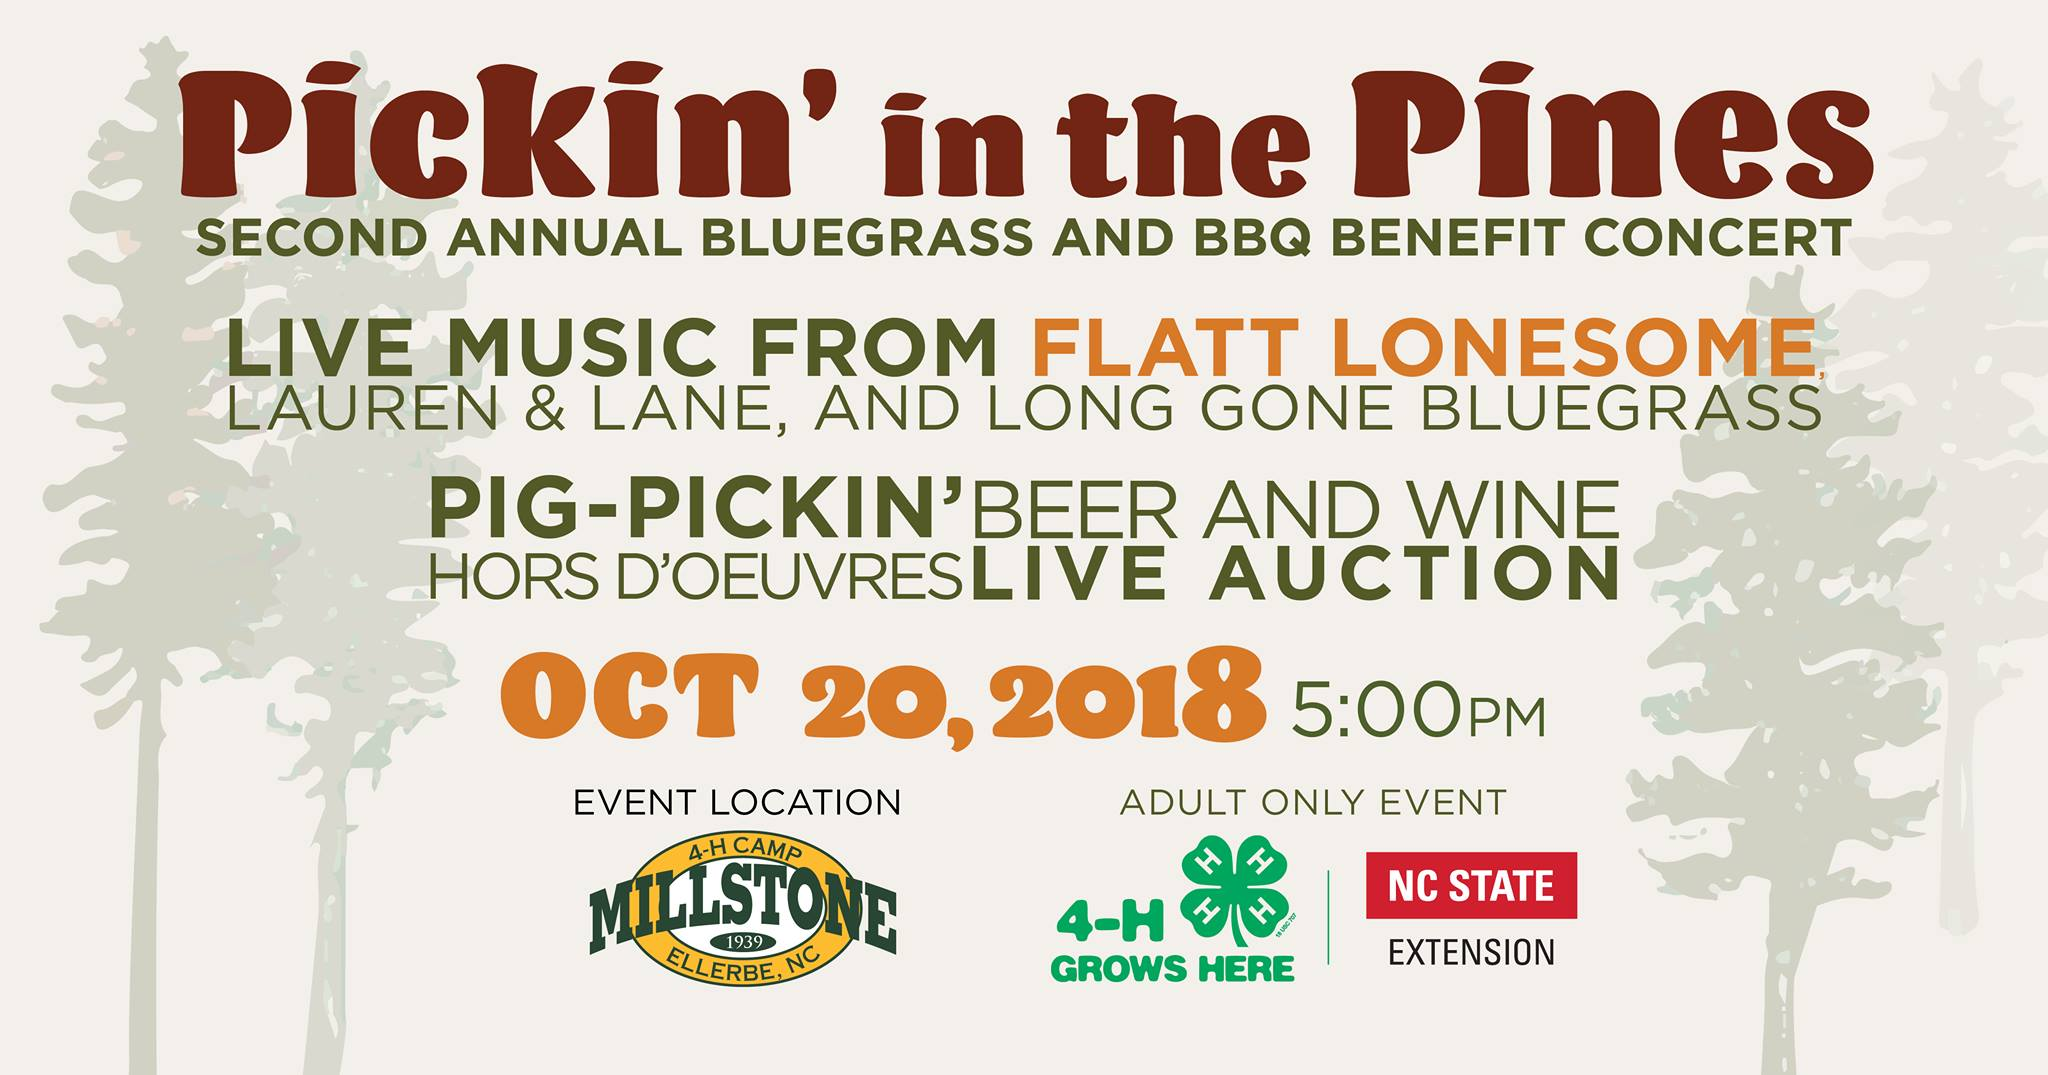 Pickin' in the Pines flyer image